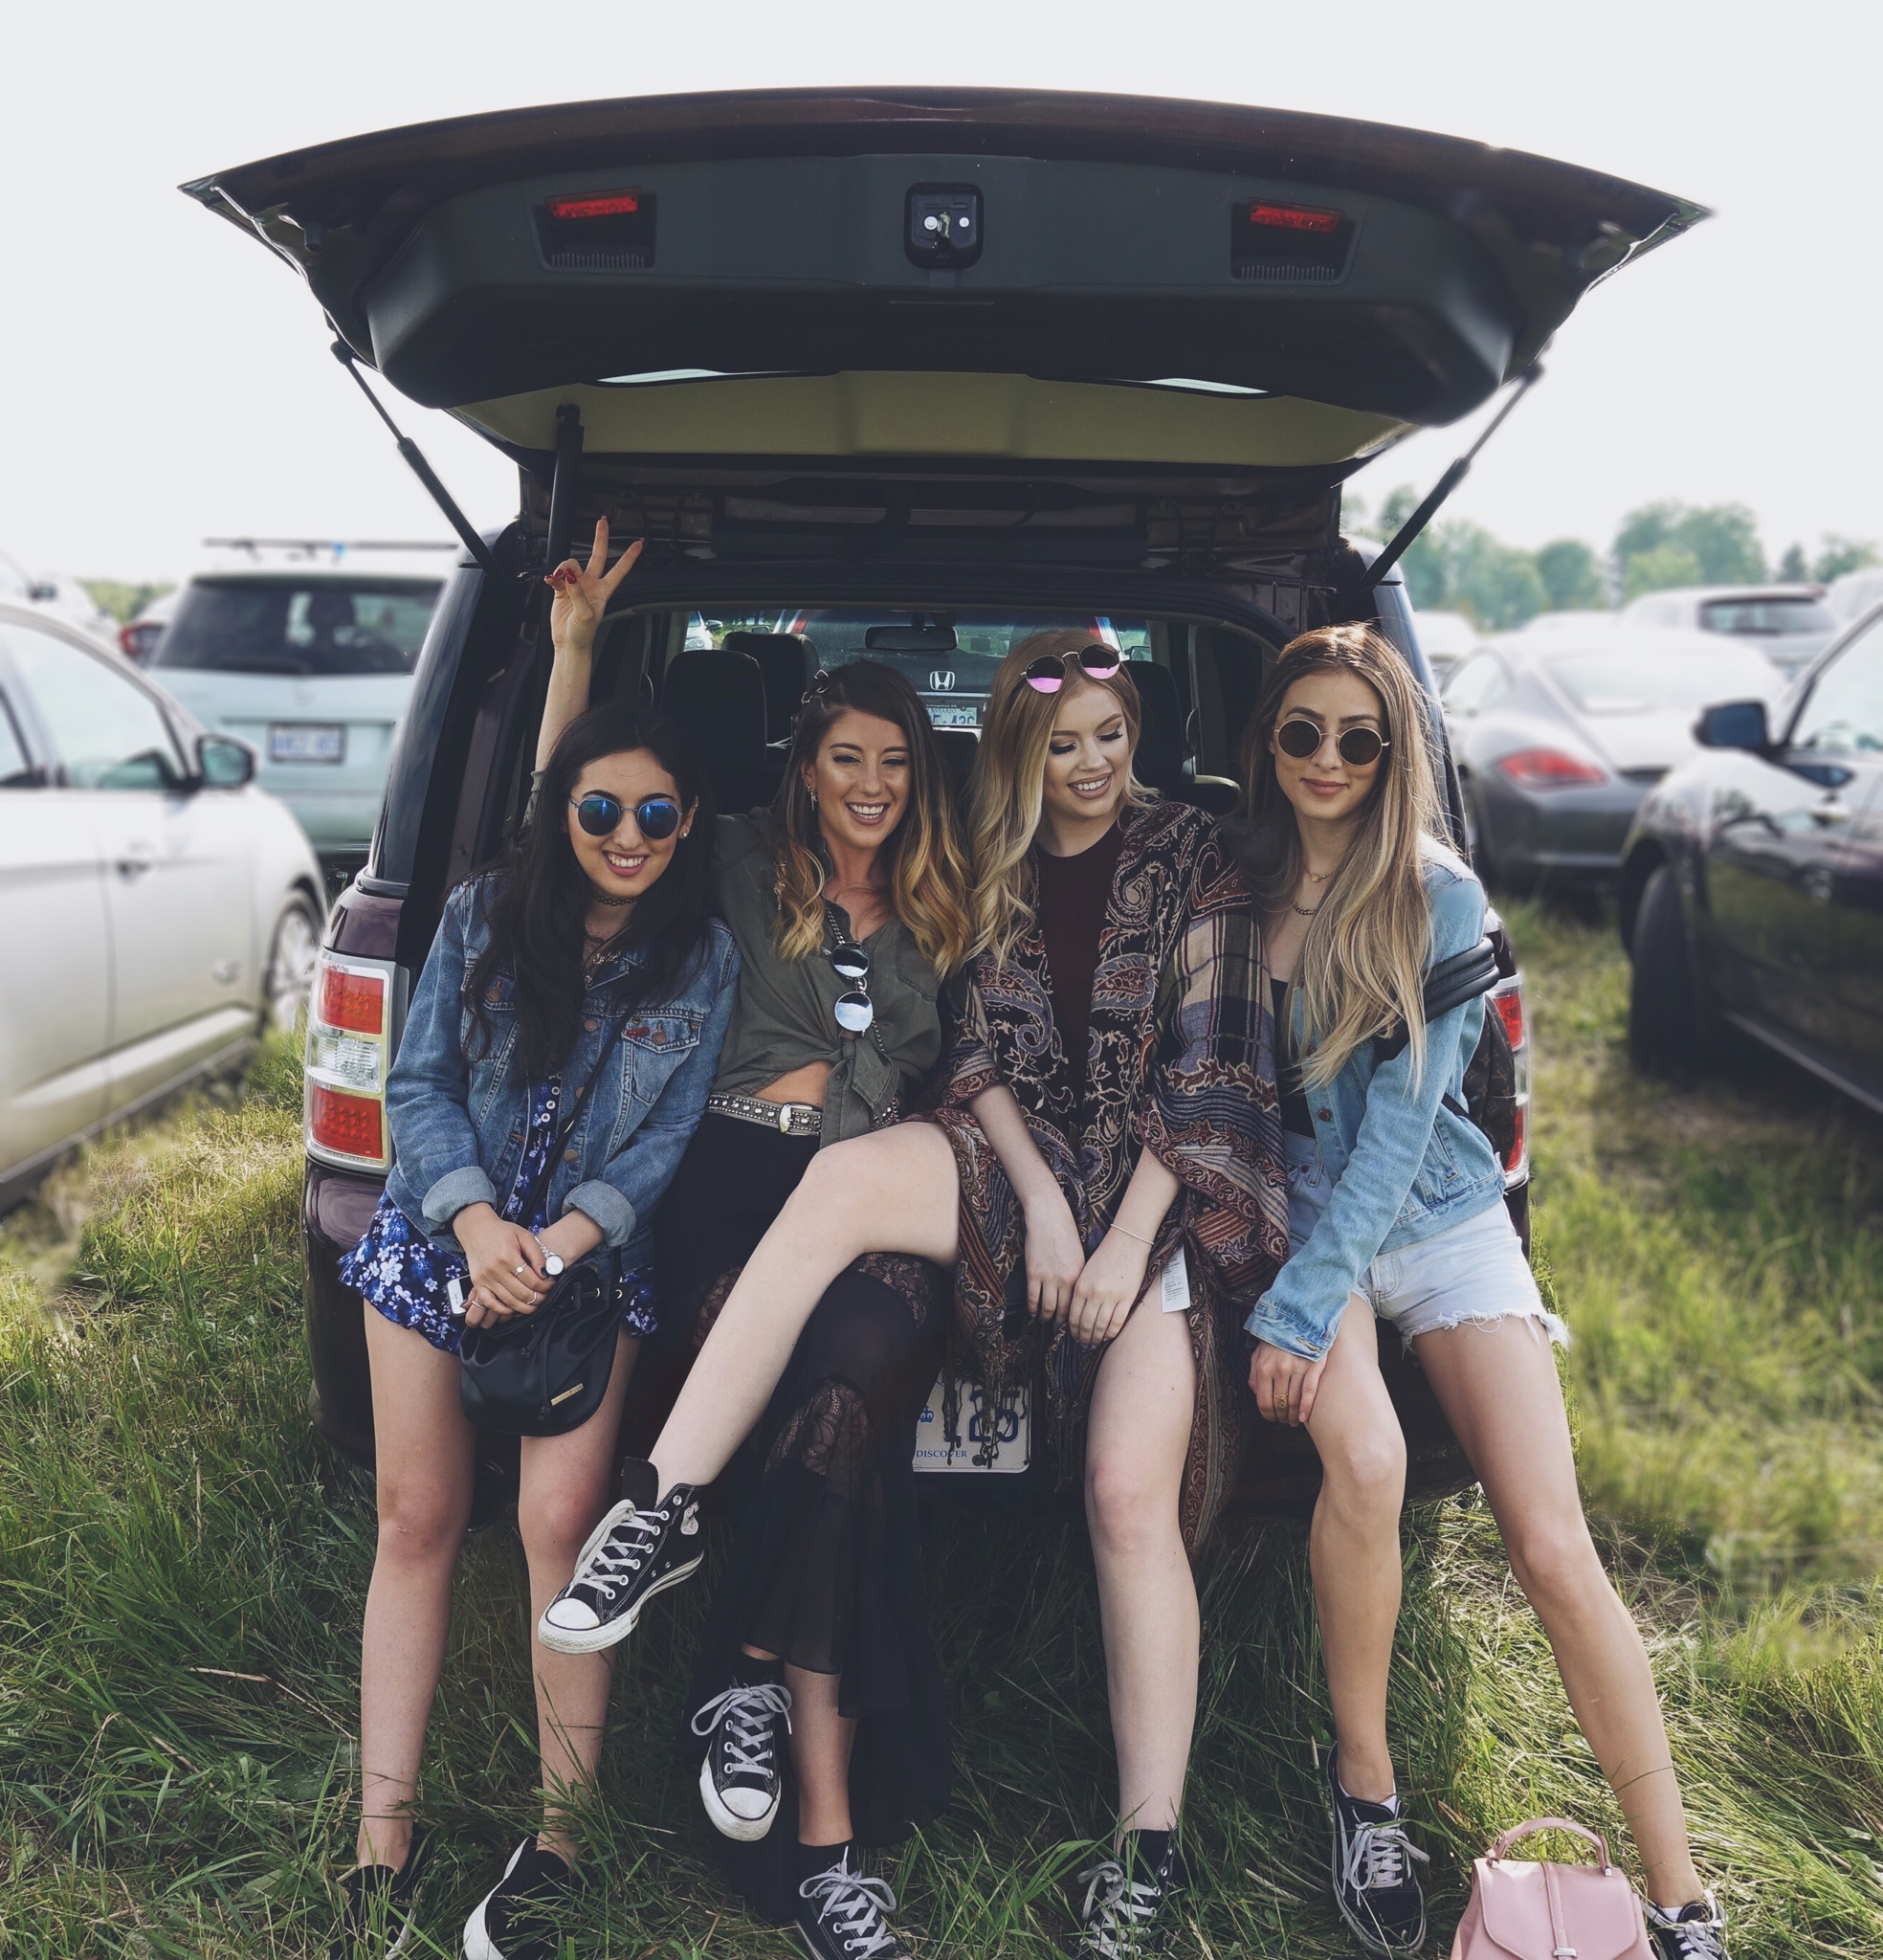 Festival Road Trip with the Girls